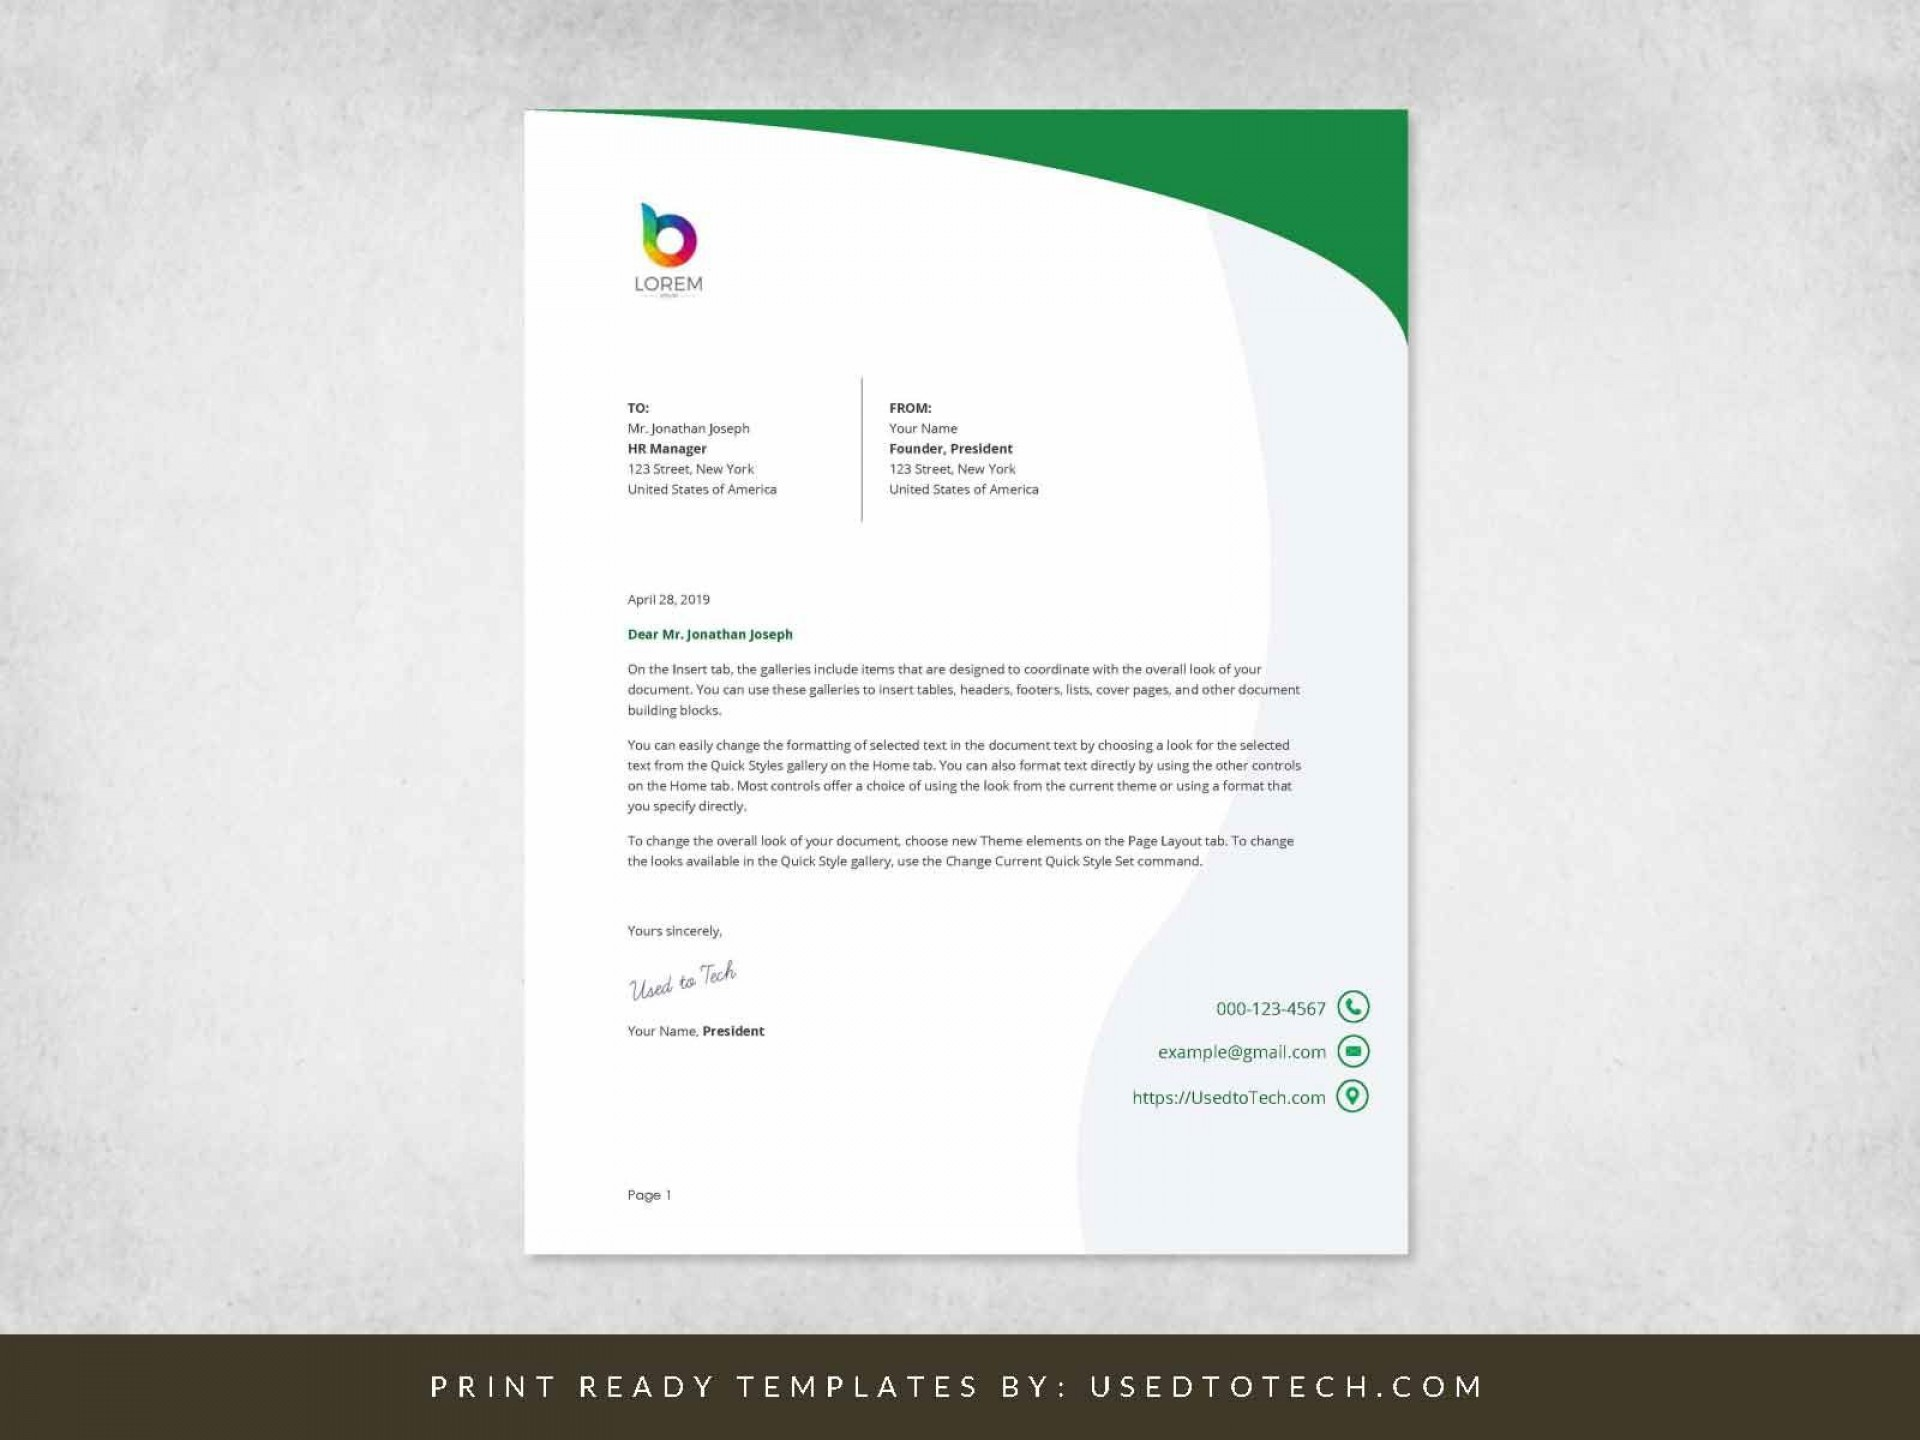 000 Simple Letterhead Format In M Word Free Download Photo 1920